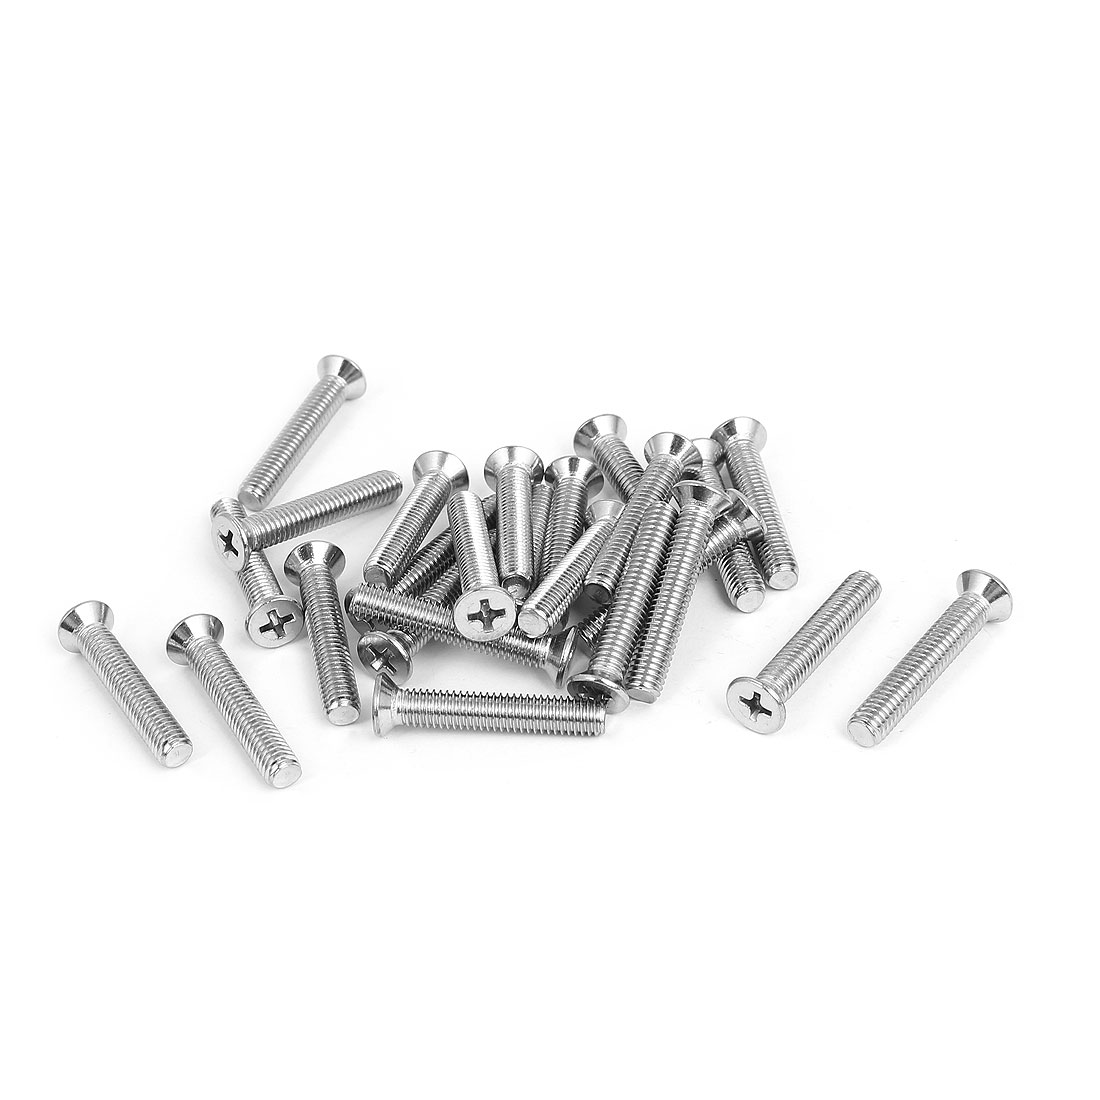 M6x35mm Stainless Steel Countersunk Flat Head Cross Phillips Screw Bolts 25pcs